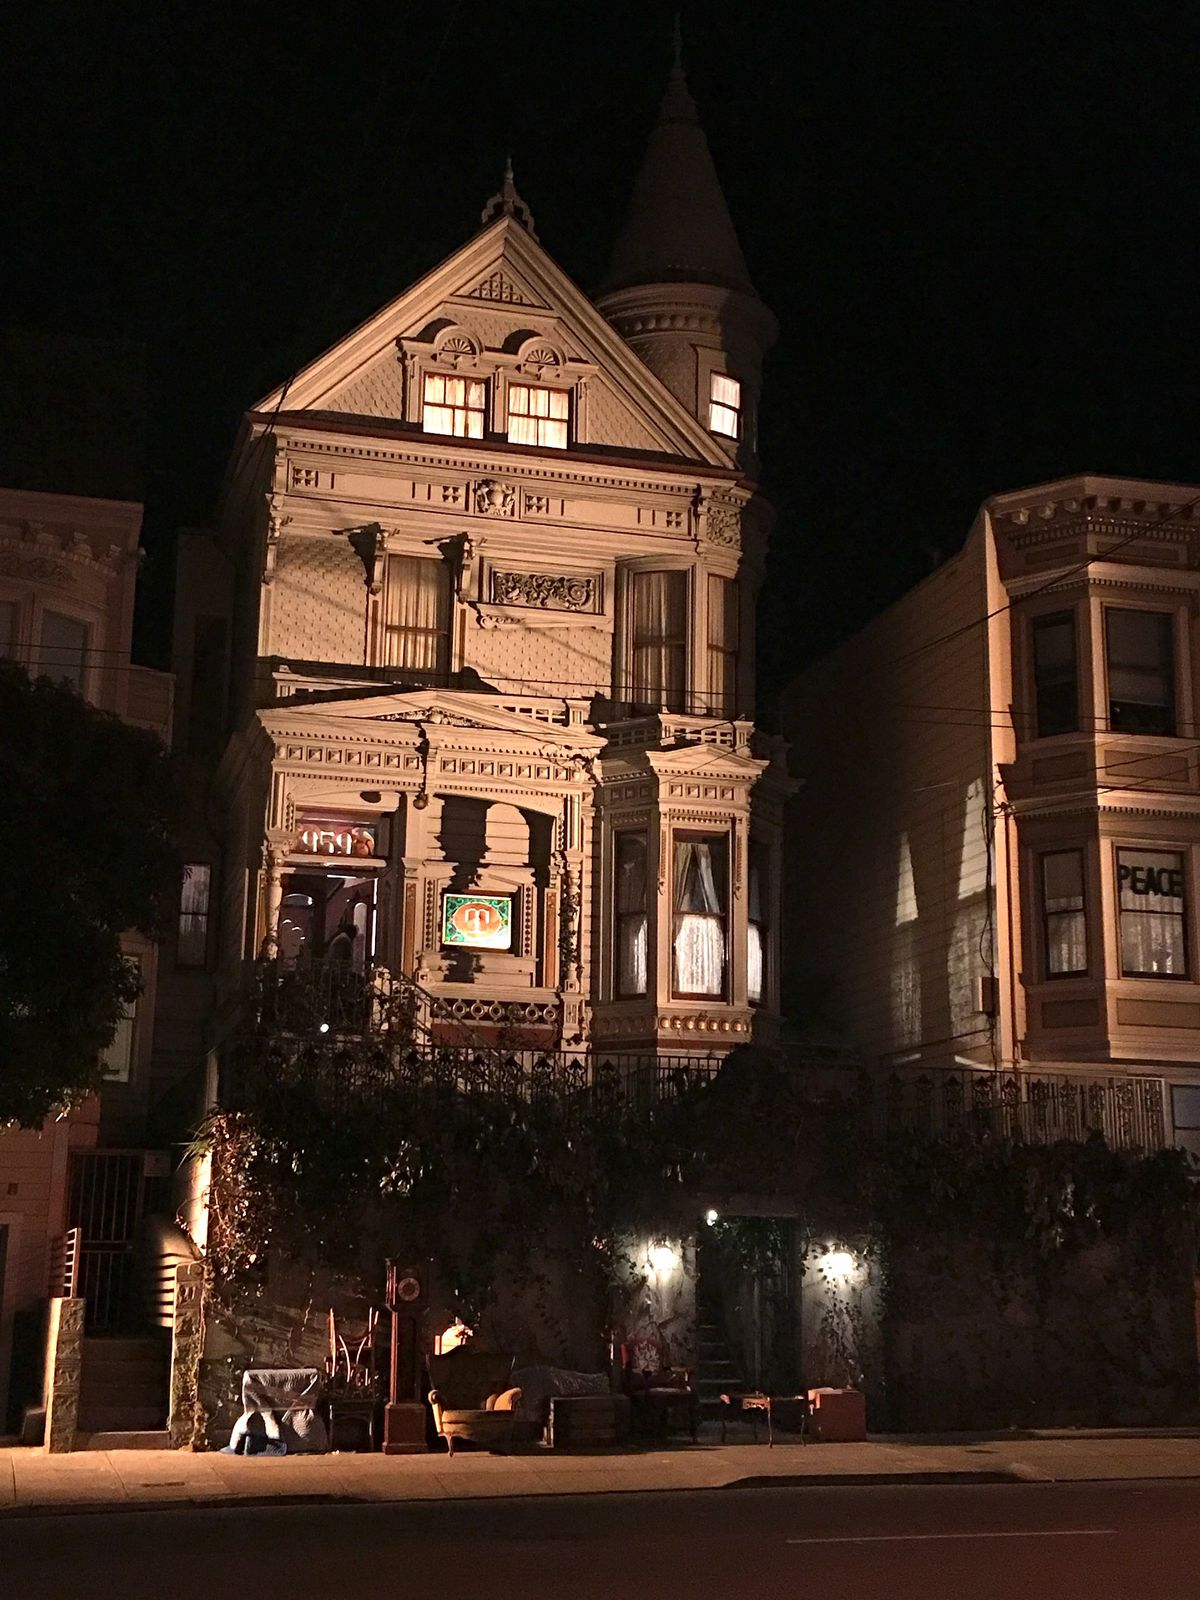 A white, detailed Victorian home at night, with lights on in the windows.